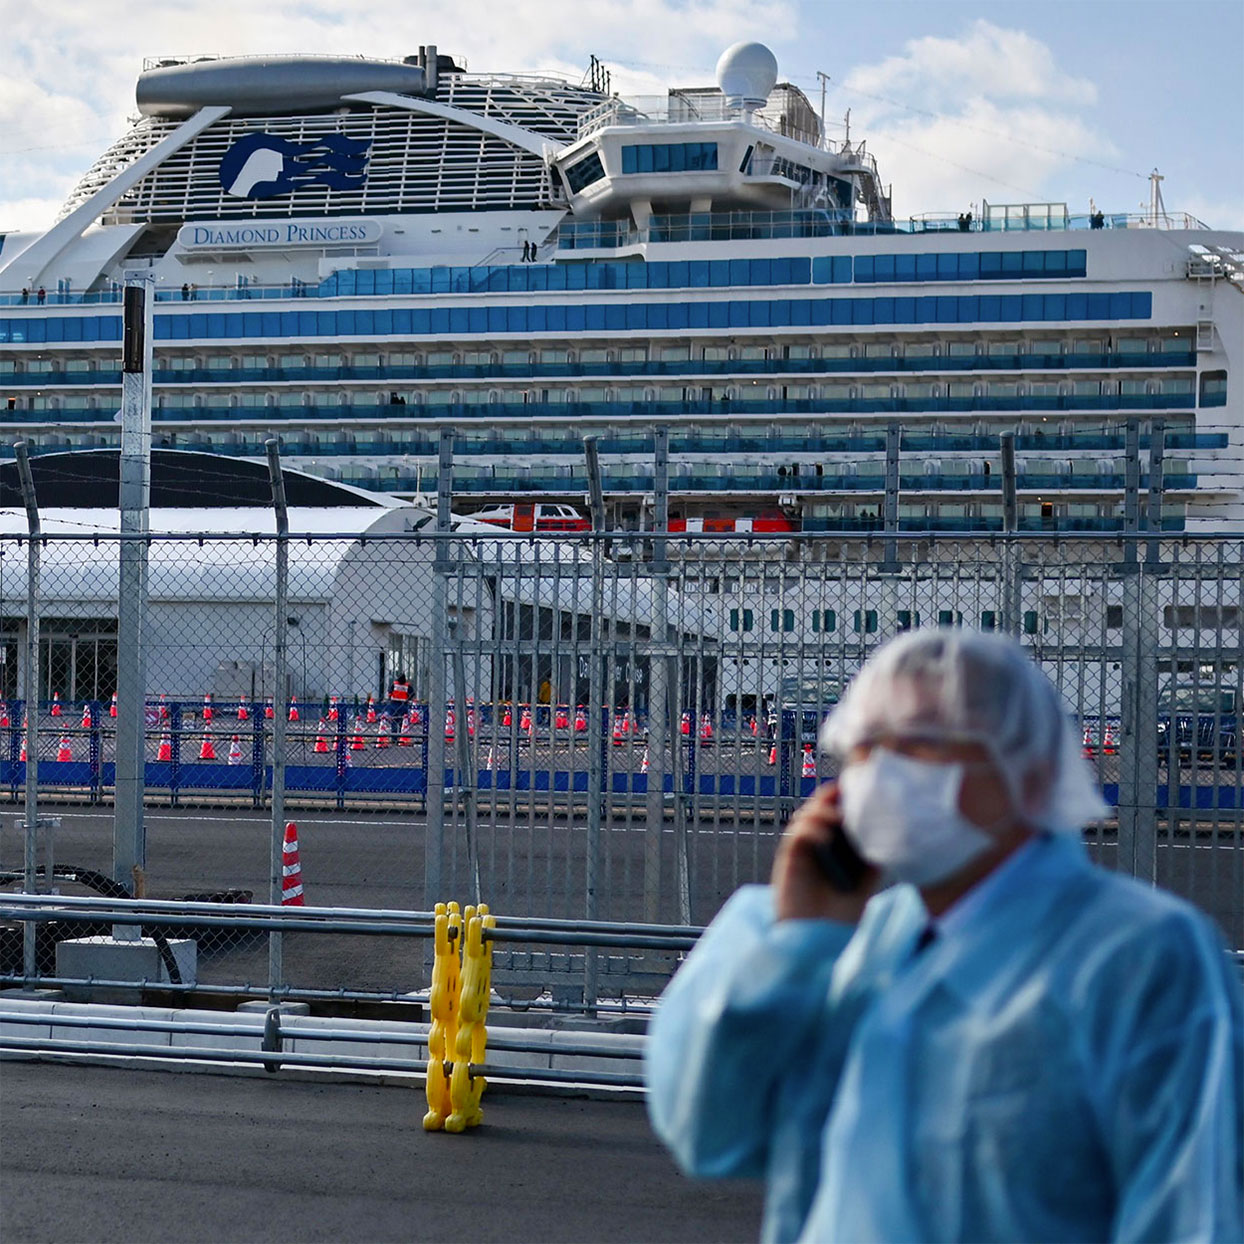 A man in protective gear speaks on the phone near the Diamond Princess cruise ship in quarantine due to fears of the new COVID-19 coronavirus, at the Daikoku Pier Cruise Terminal in Yokohama on February 19, 2020